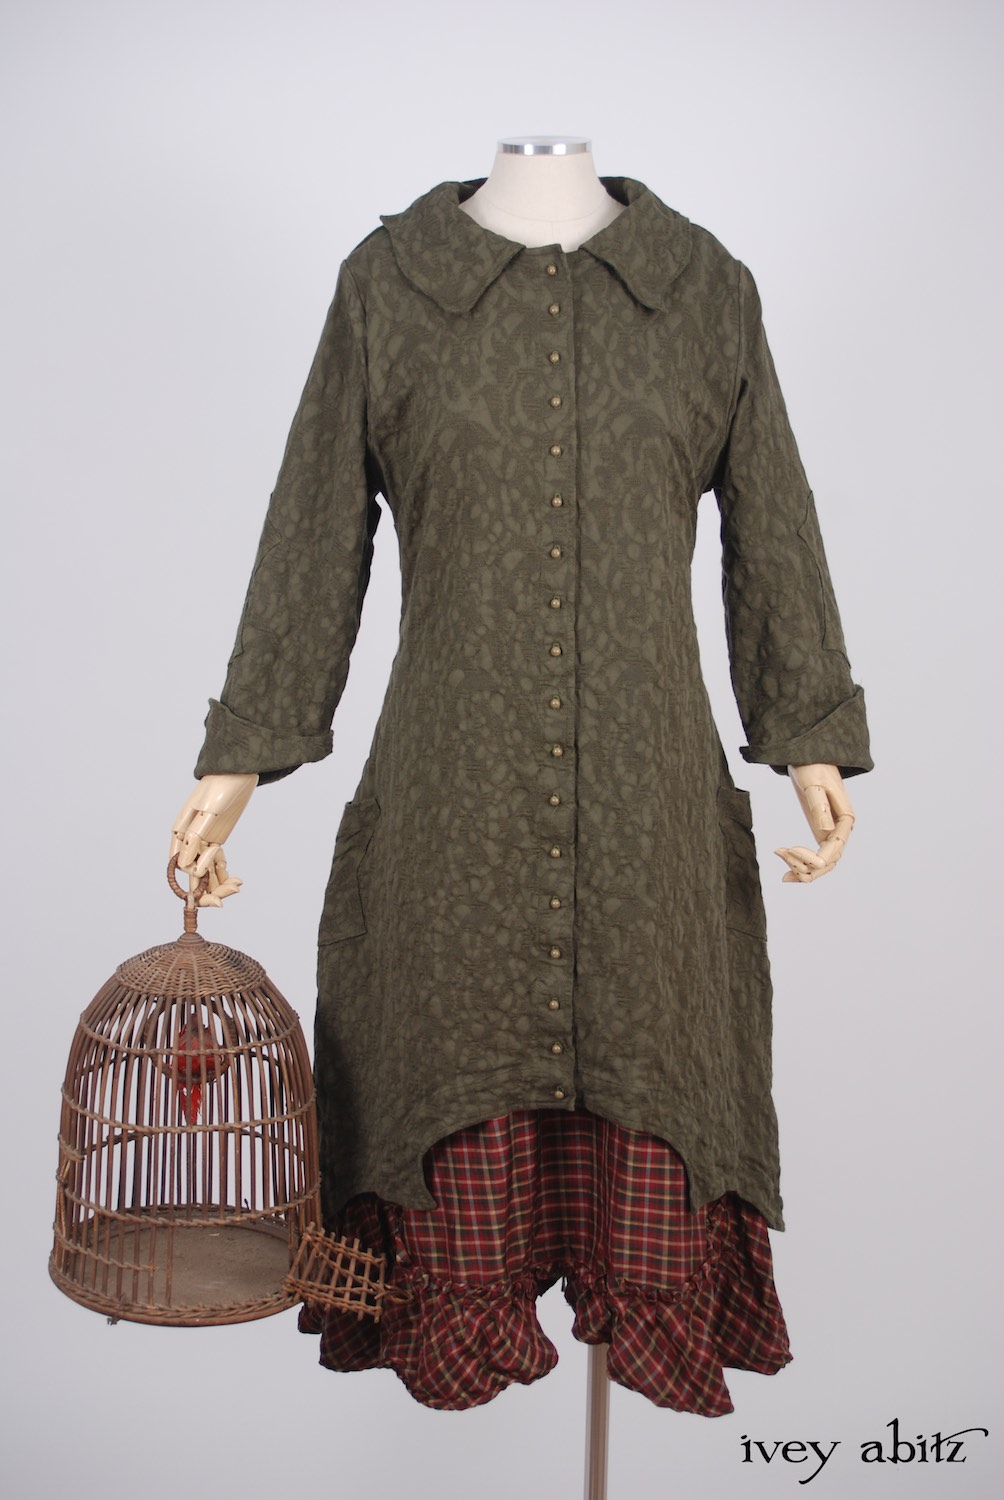 Ivey Abitz - Chittister Duster Coat in Morning Meadow Hemstitch Jacquard  - Tilbrook Frock in Peony Washed Plaid Silk, High Water Length